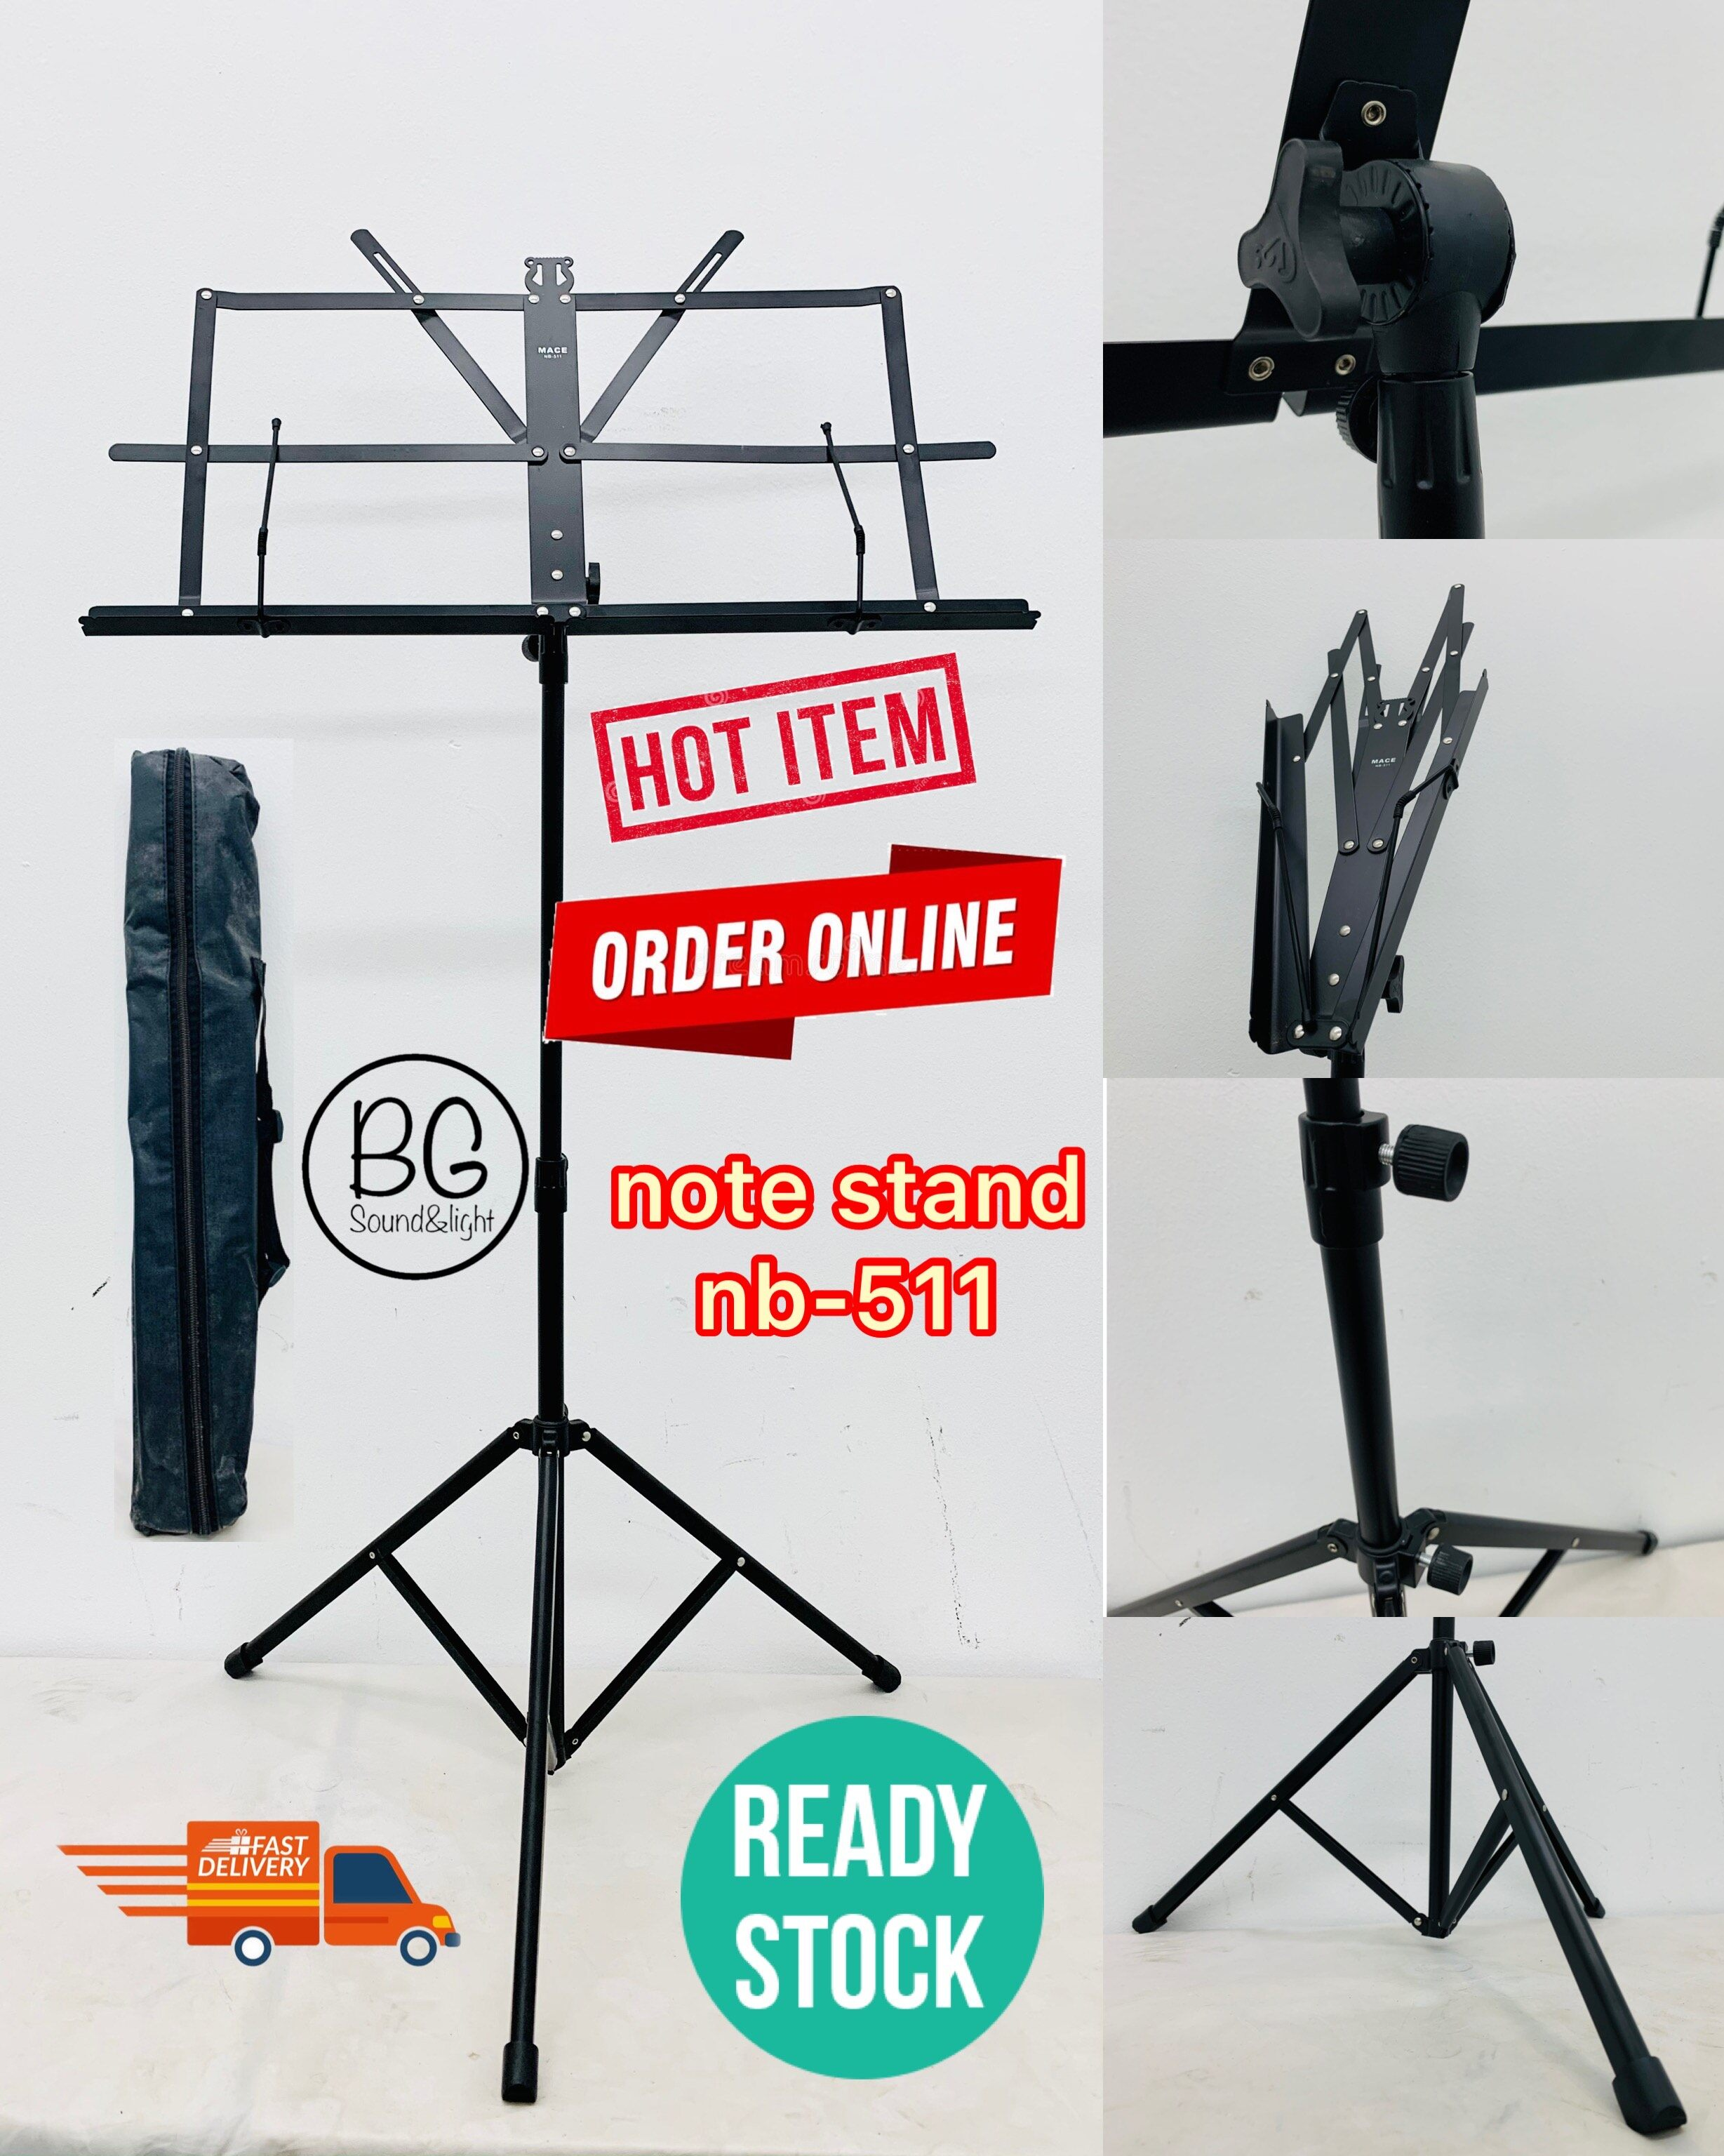 [READY STOCK] NB-511 Foldable Note Stand Music Stand with Bag (NB511)